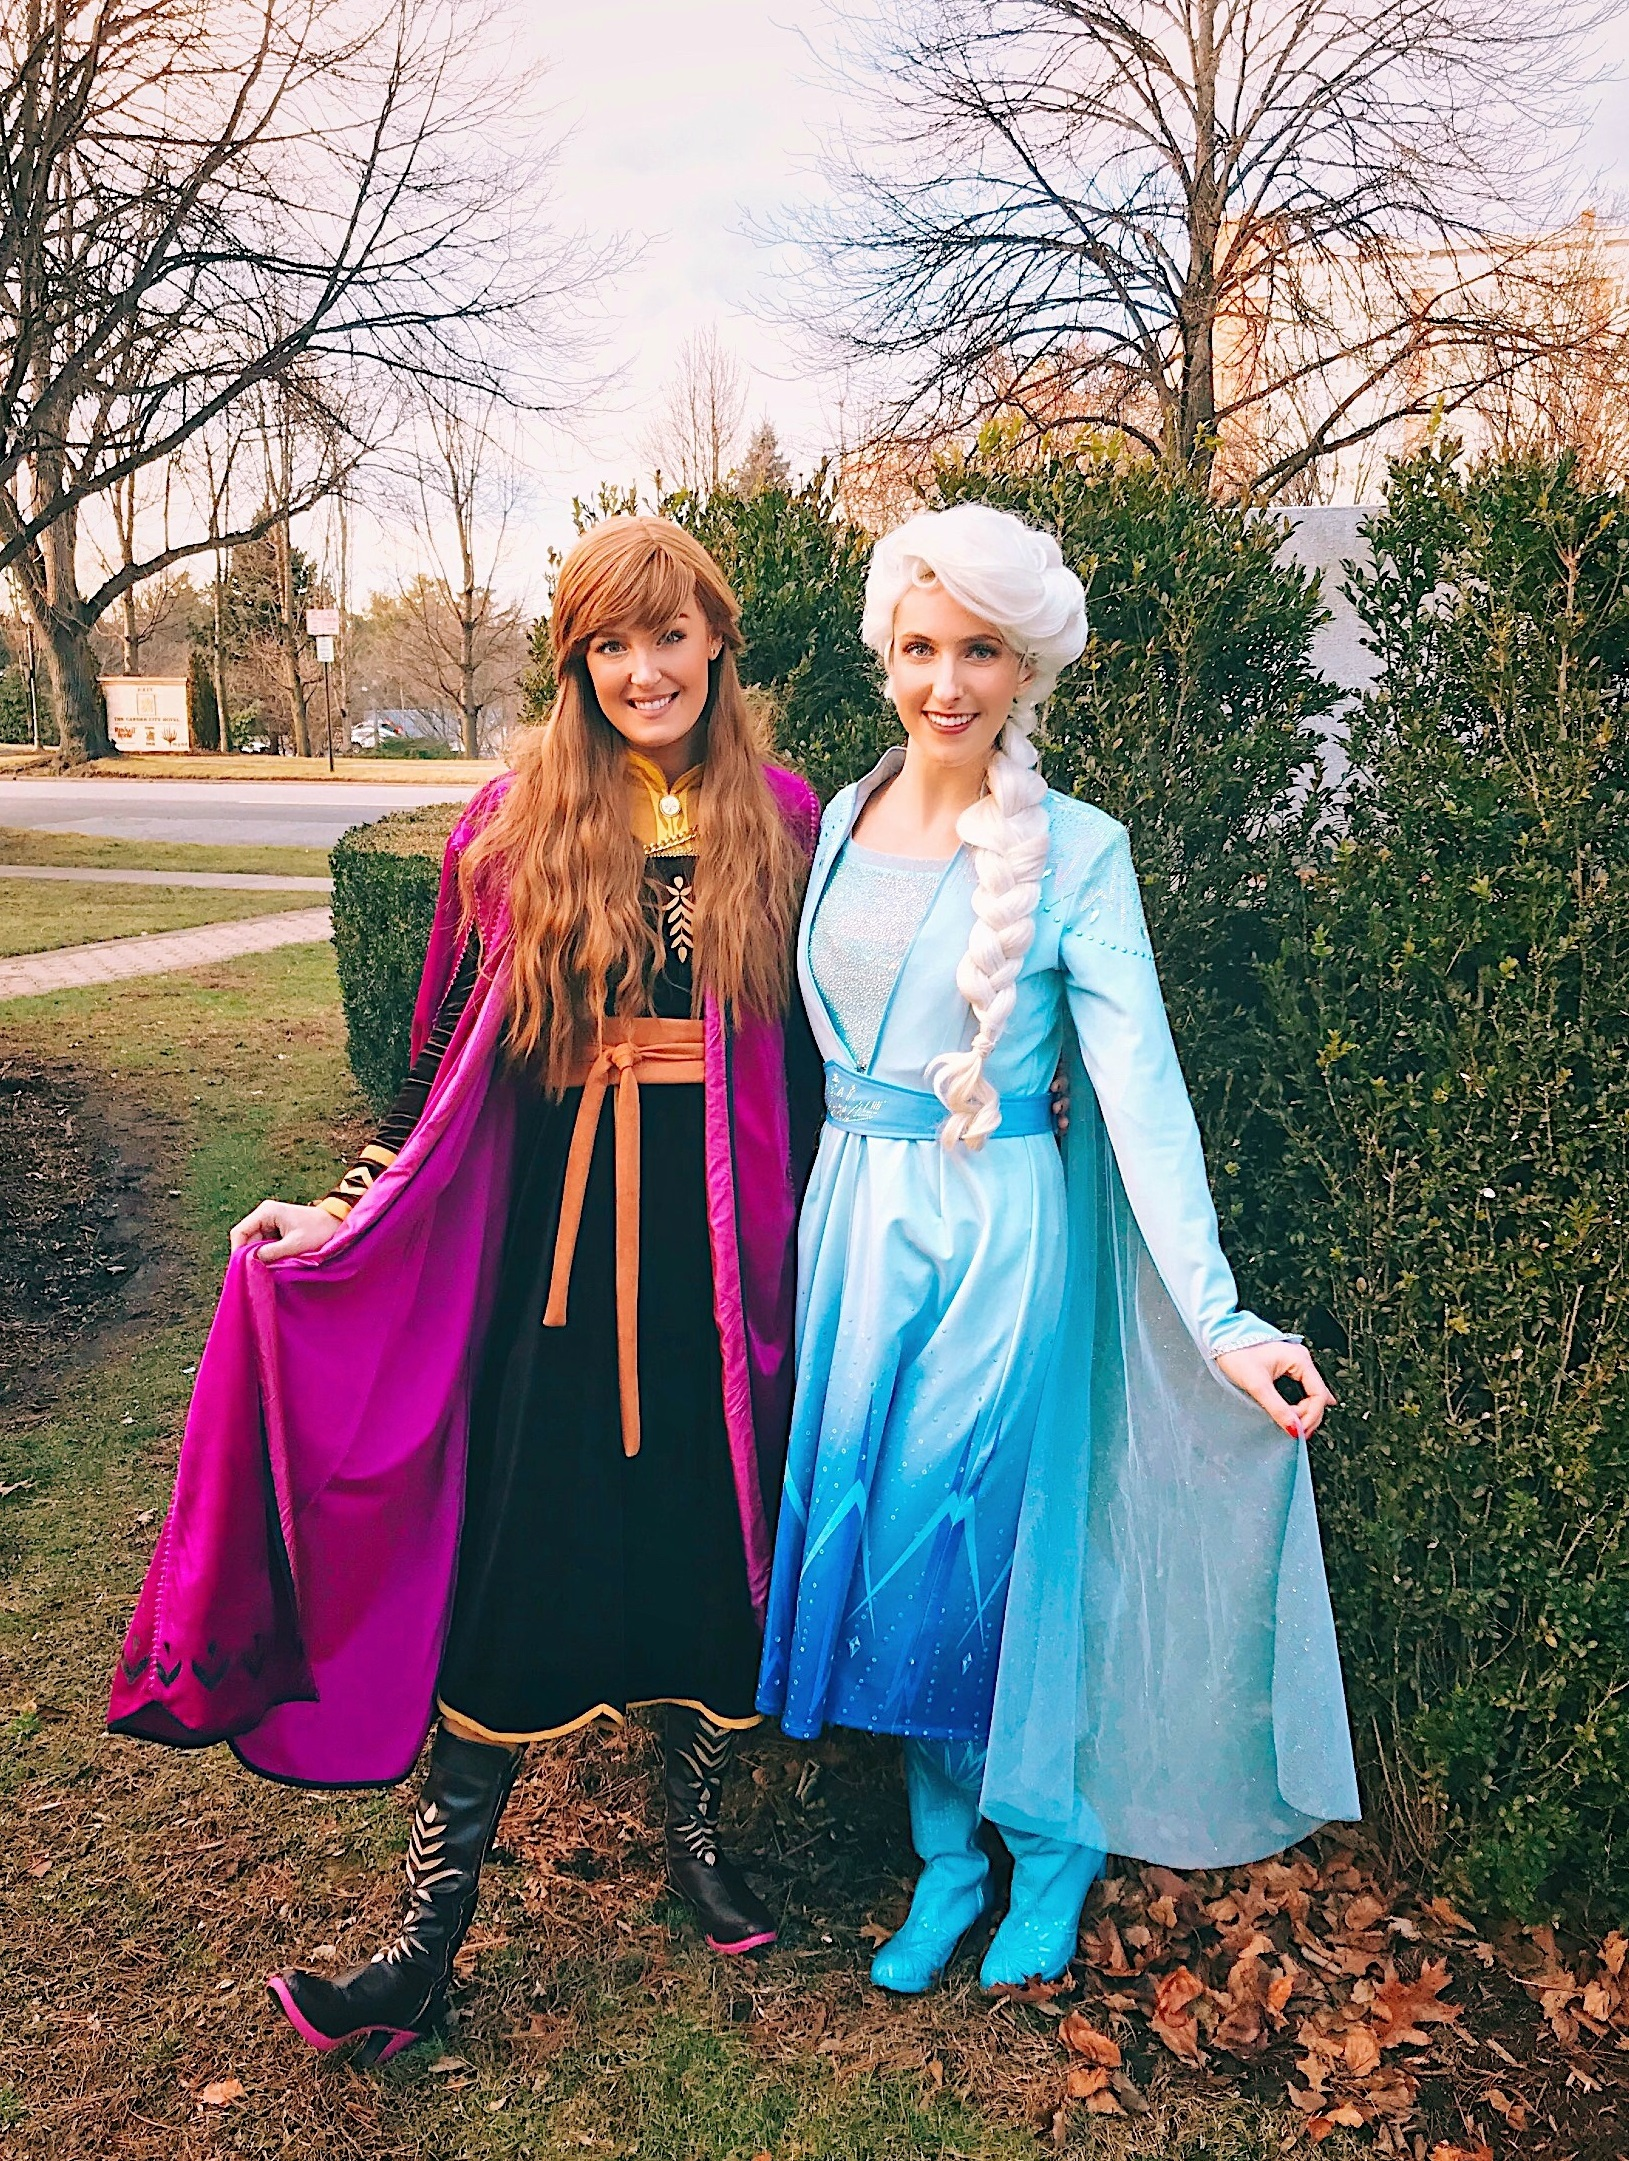 The Royal Winter sisters